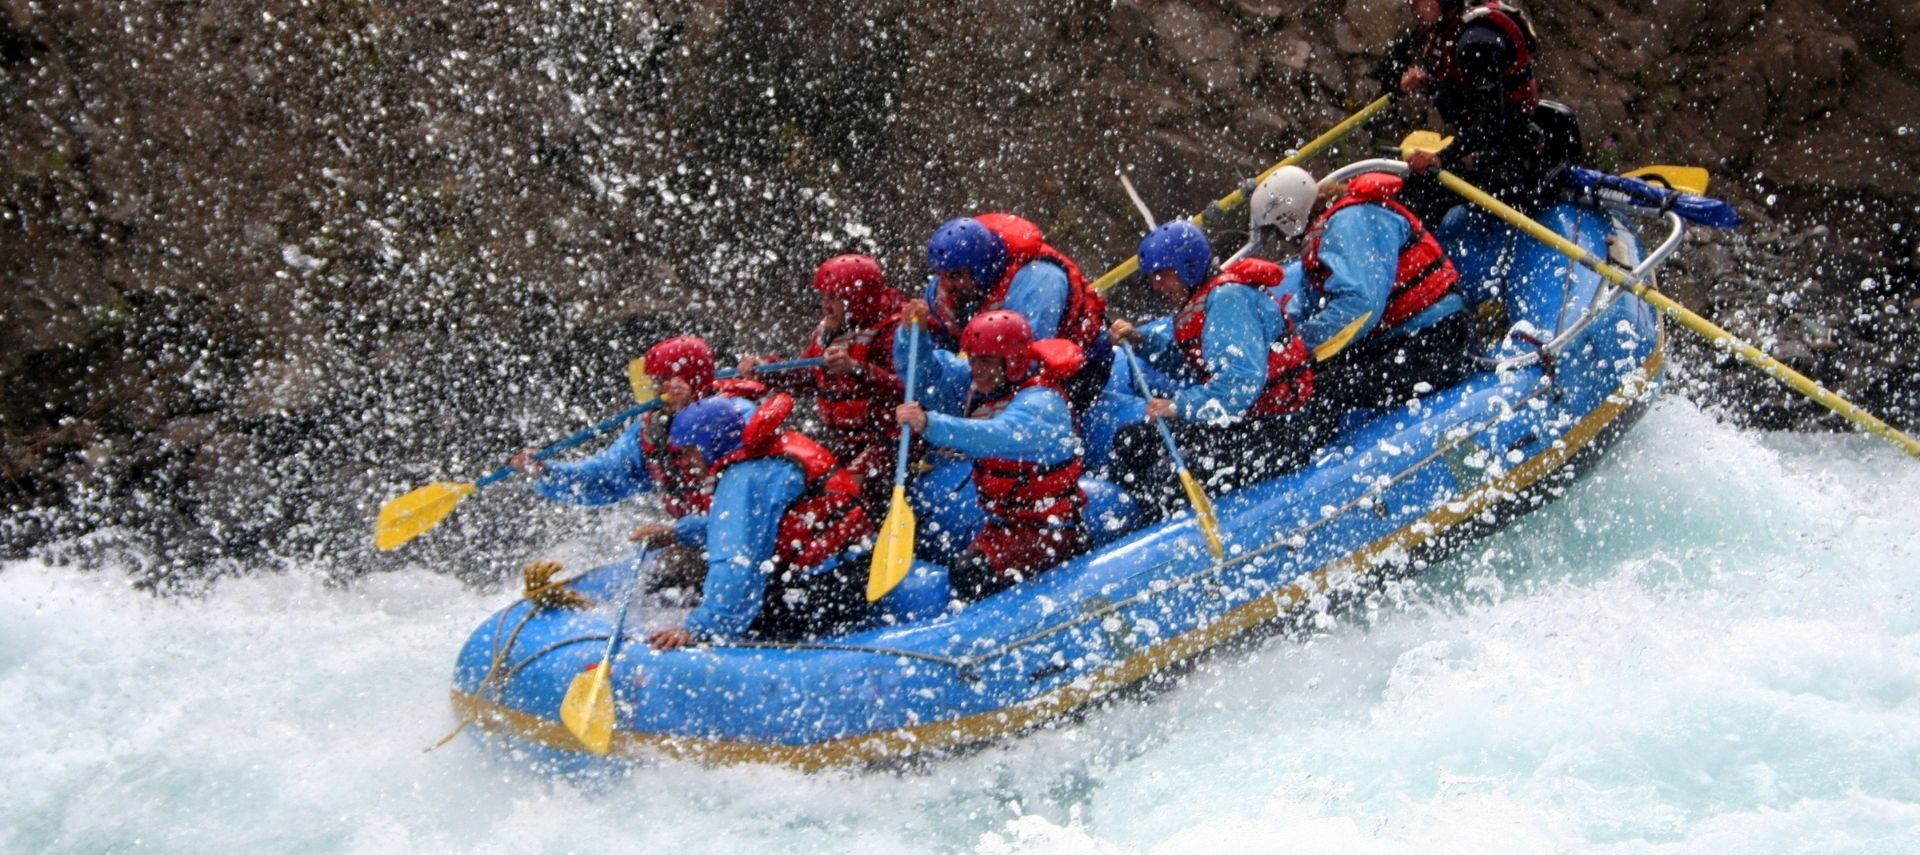 Raft full of people rowing down the rapids surrounded by splashing water